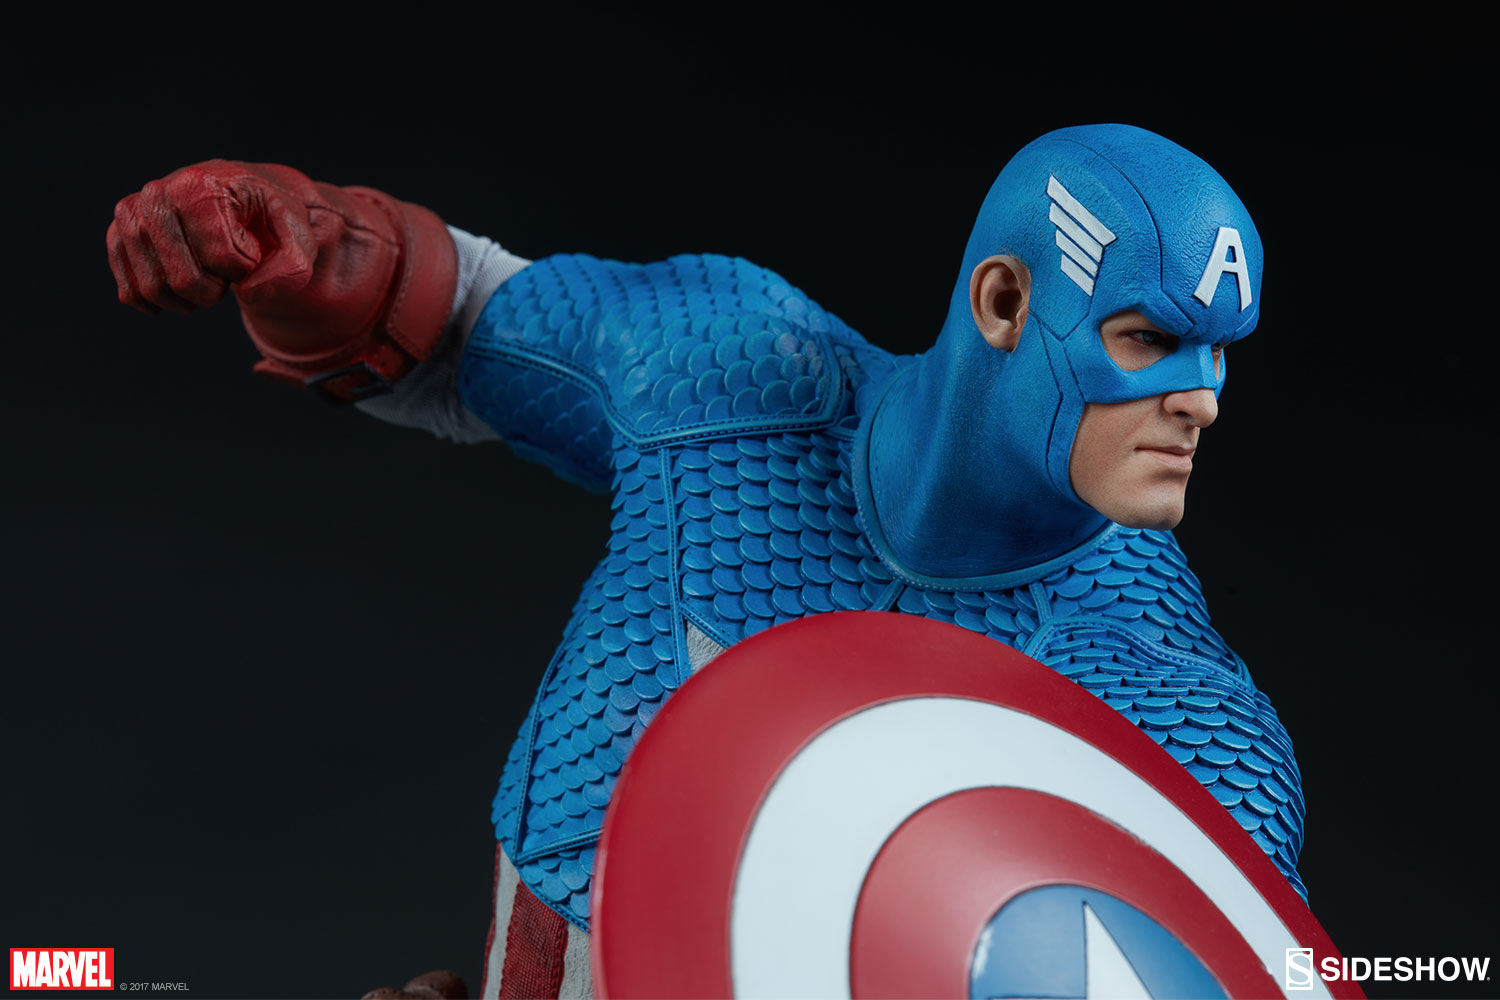 Marvel Captain America Statue by Sideshow Collectibles   Sideshow     Captain America Statue Captain America Statue